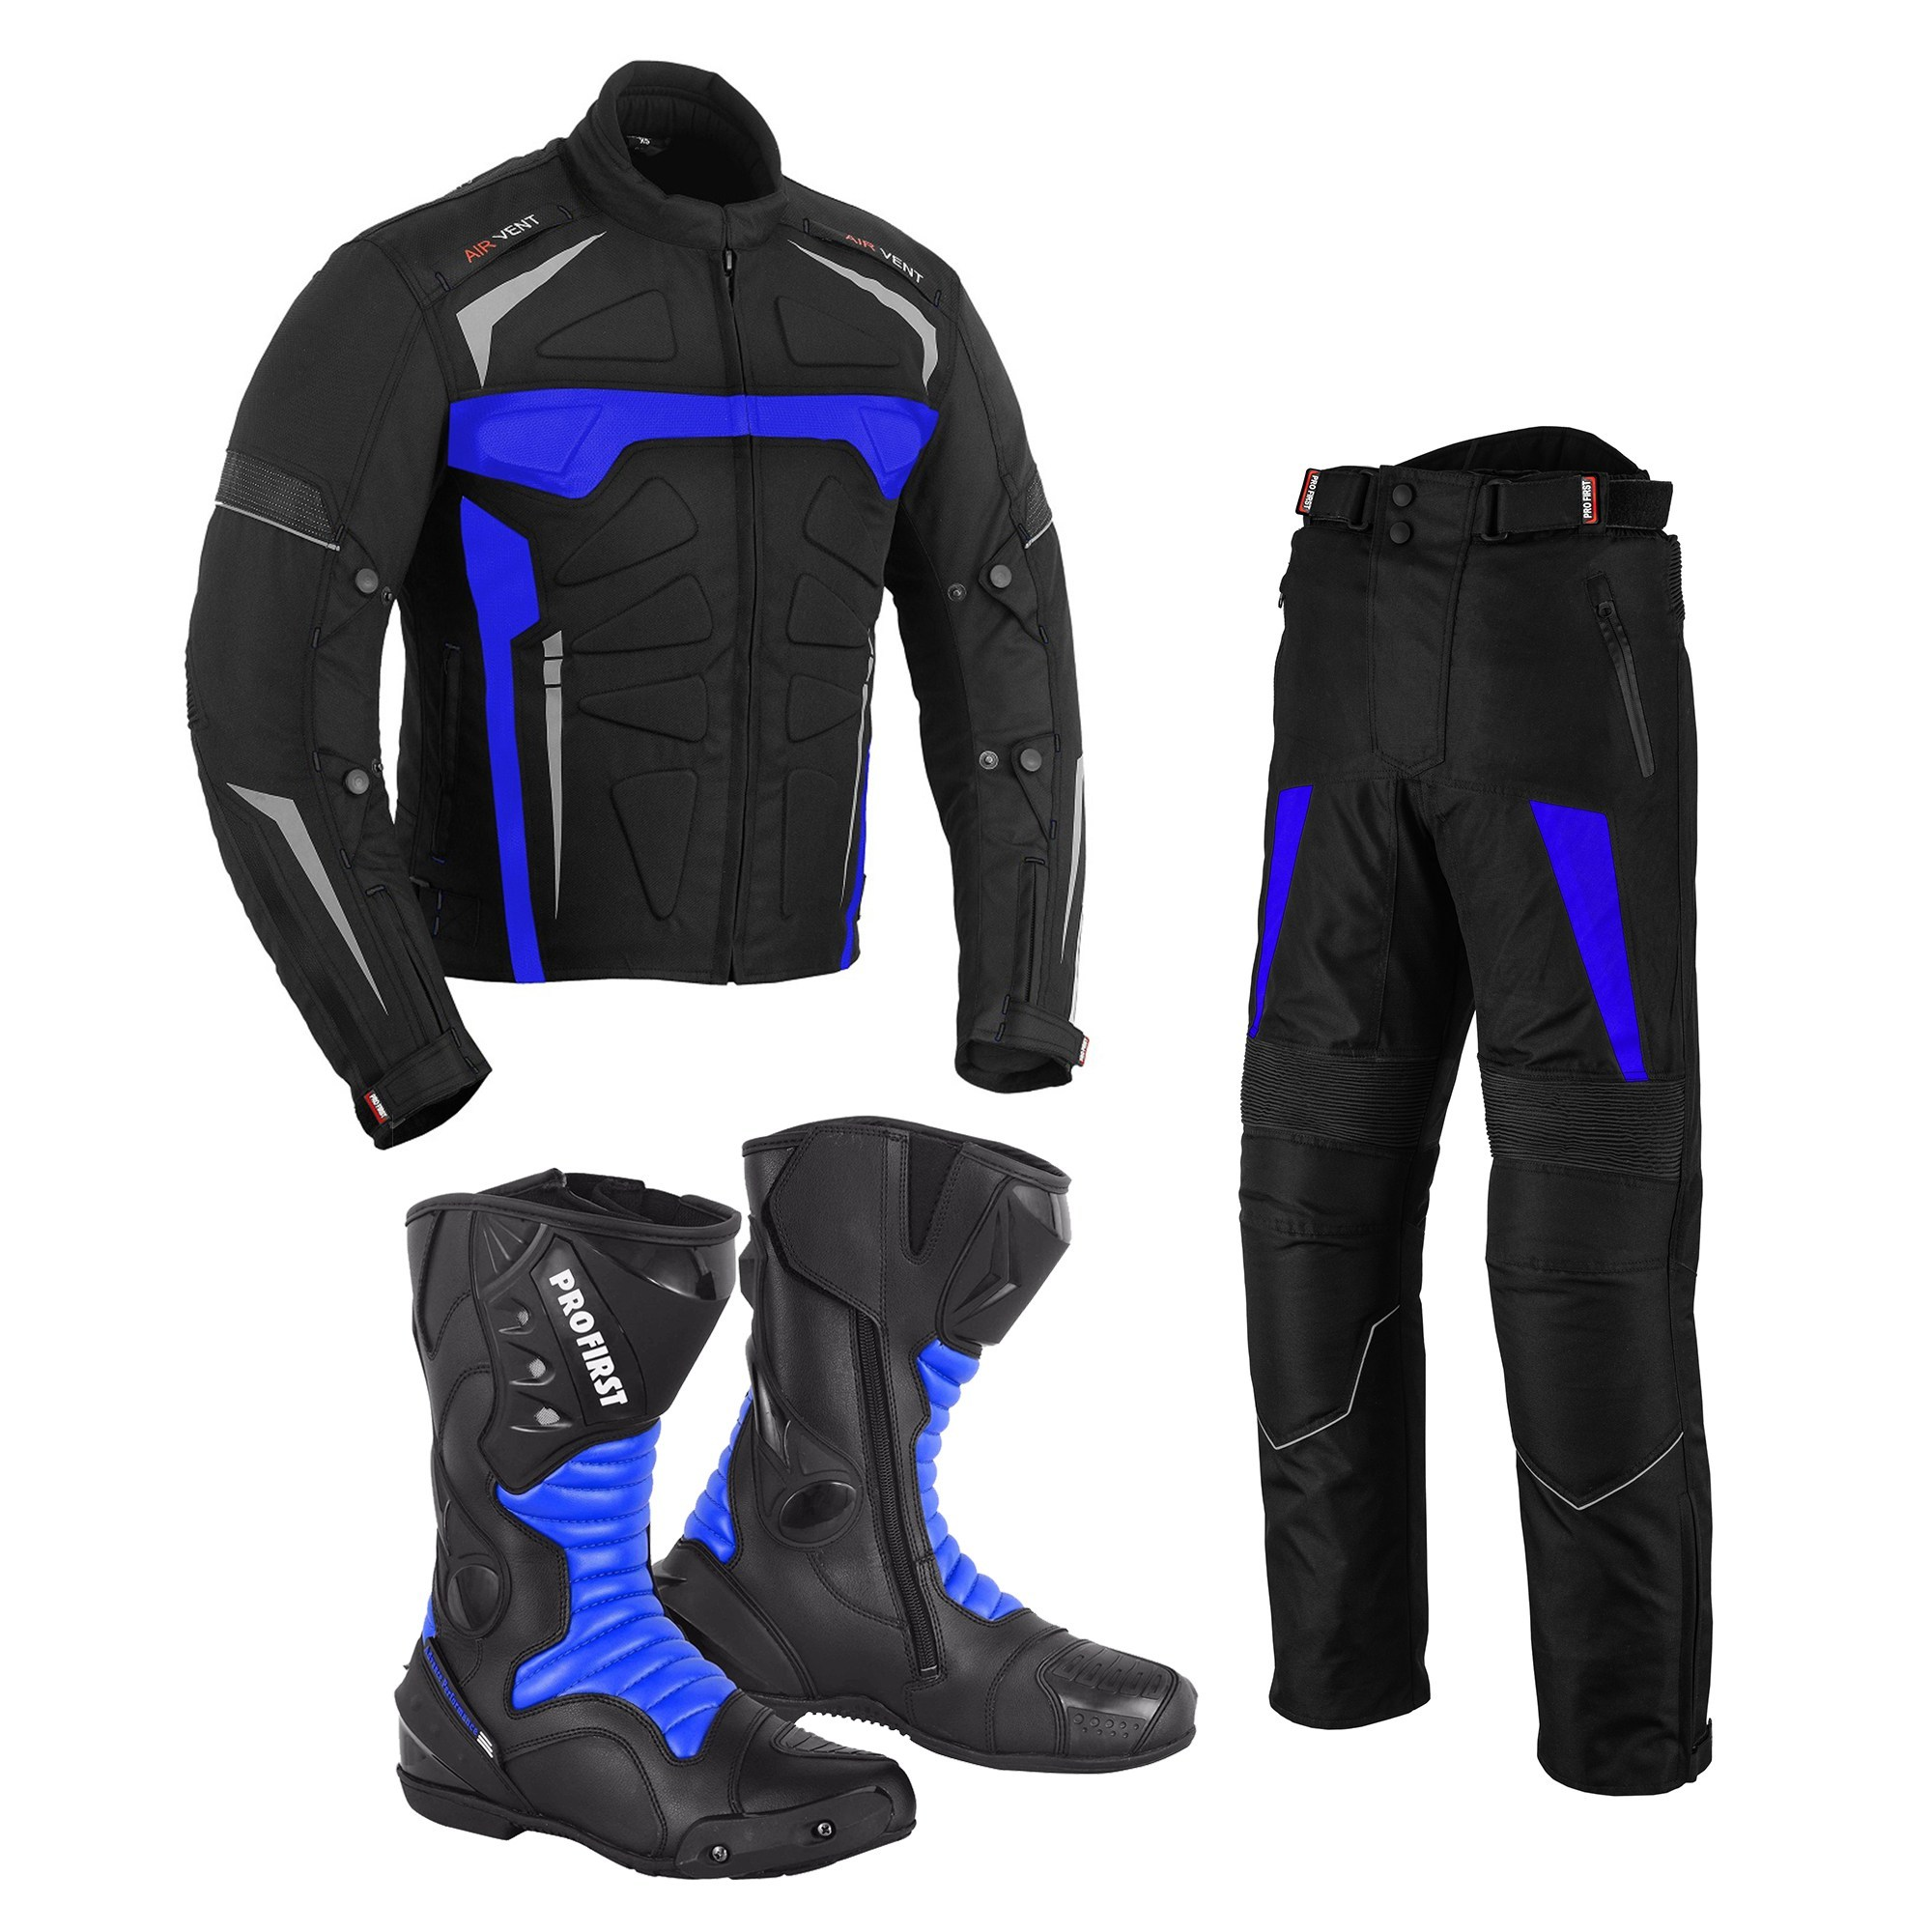 Full Black PROFIRST Motorbike Motorcycle Summer Jacket Hot Weather Gears Coats Cordura Fabric CE Approved Armoured